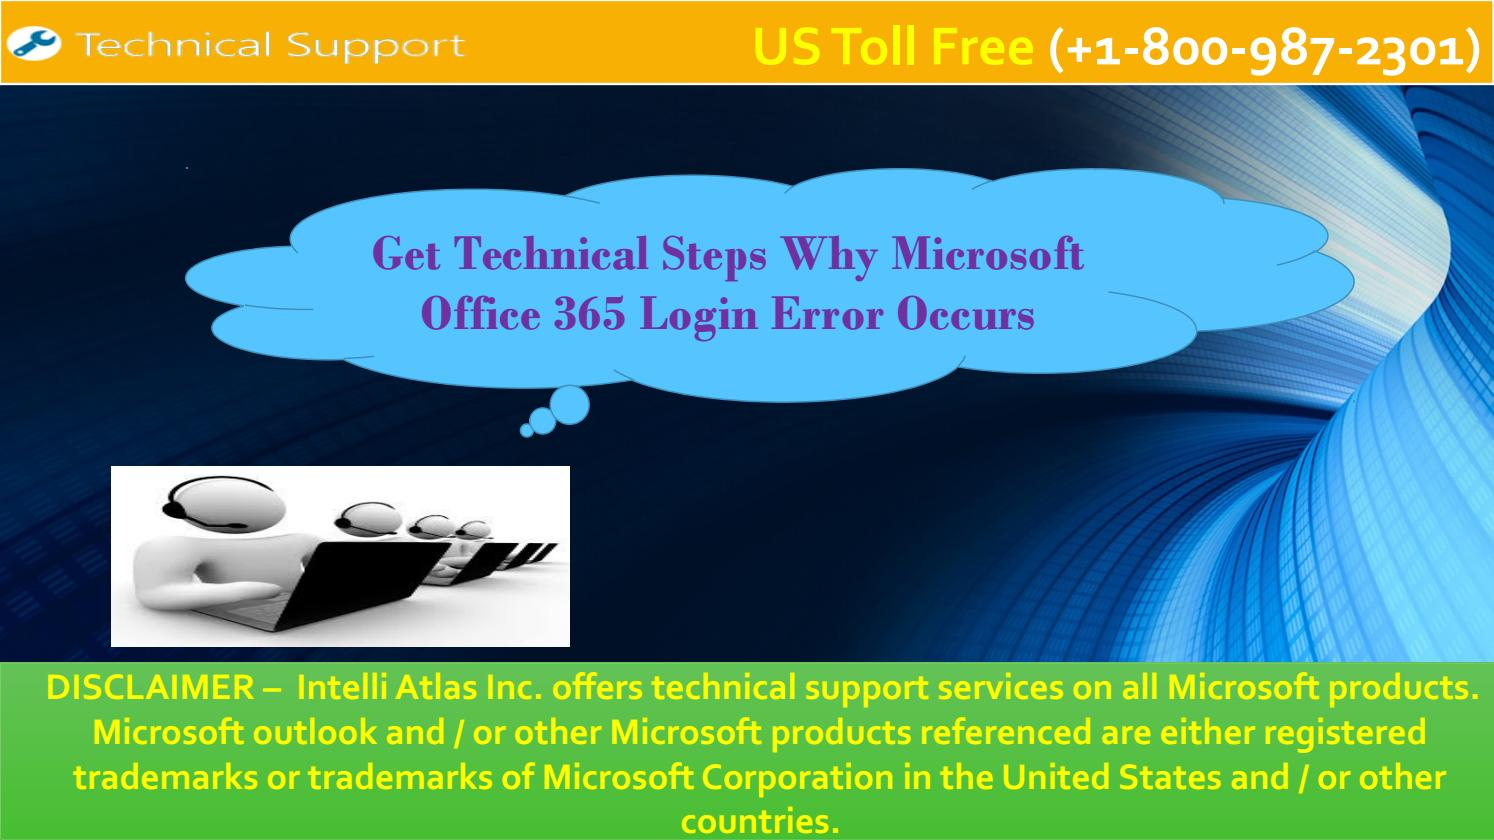 get technical steps why microsoft office 365 login error occurs by